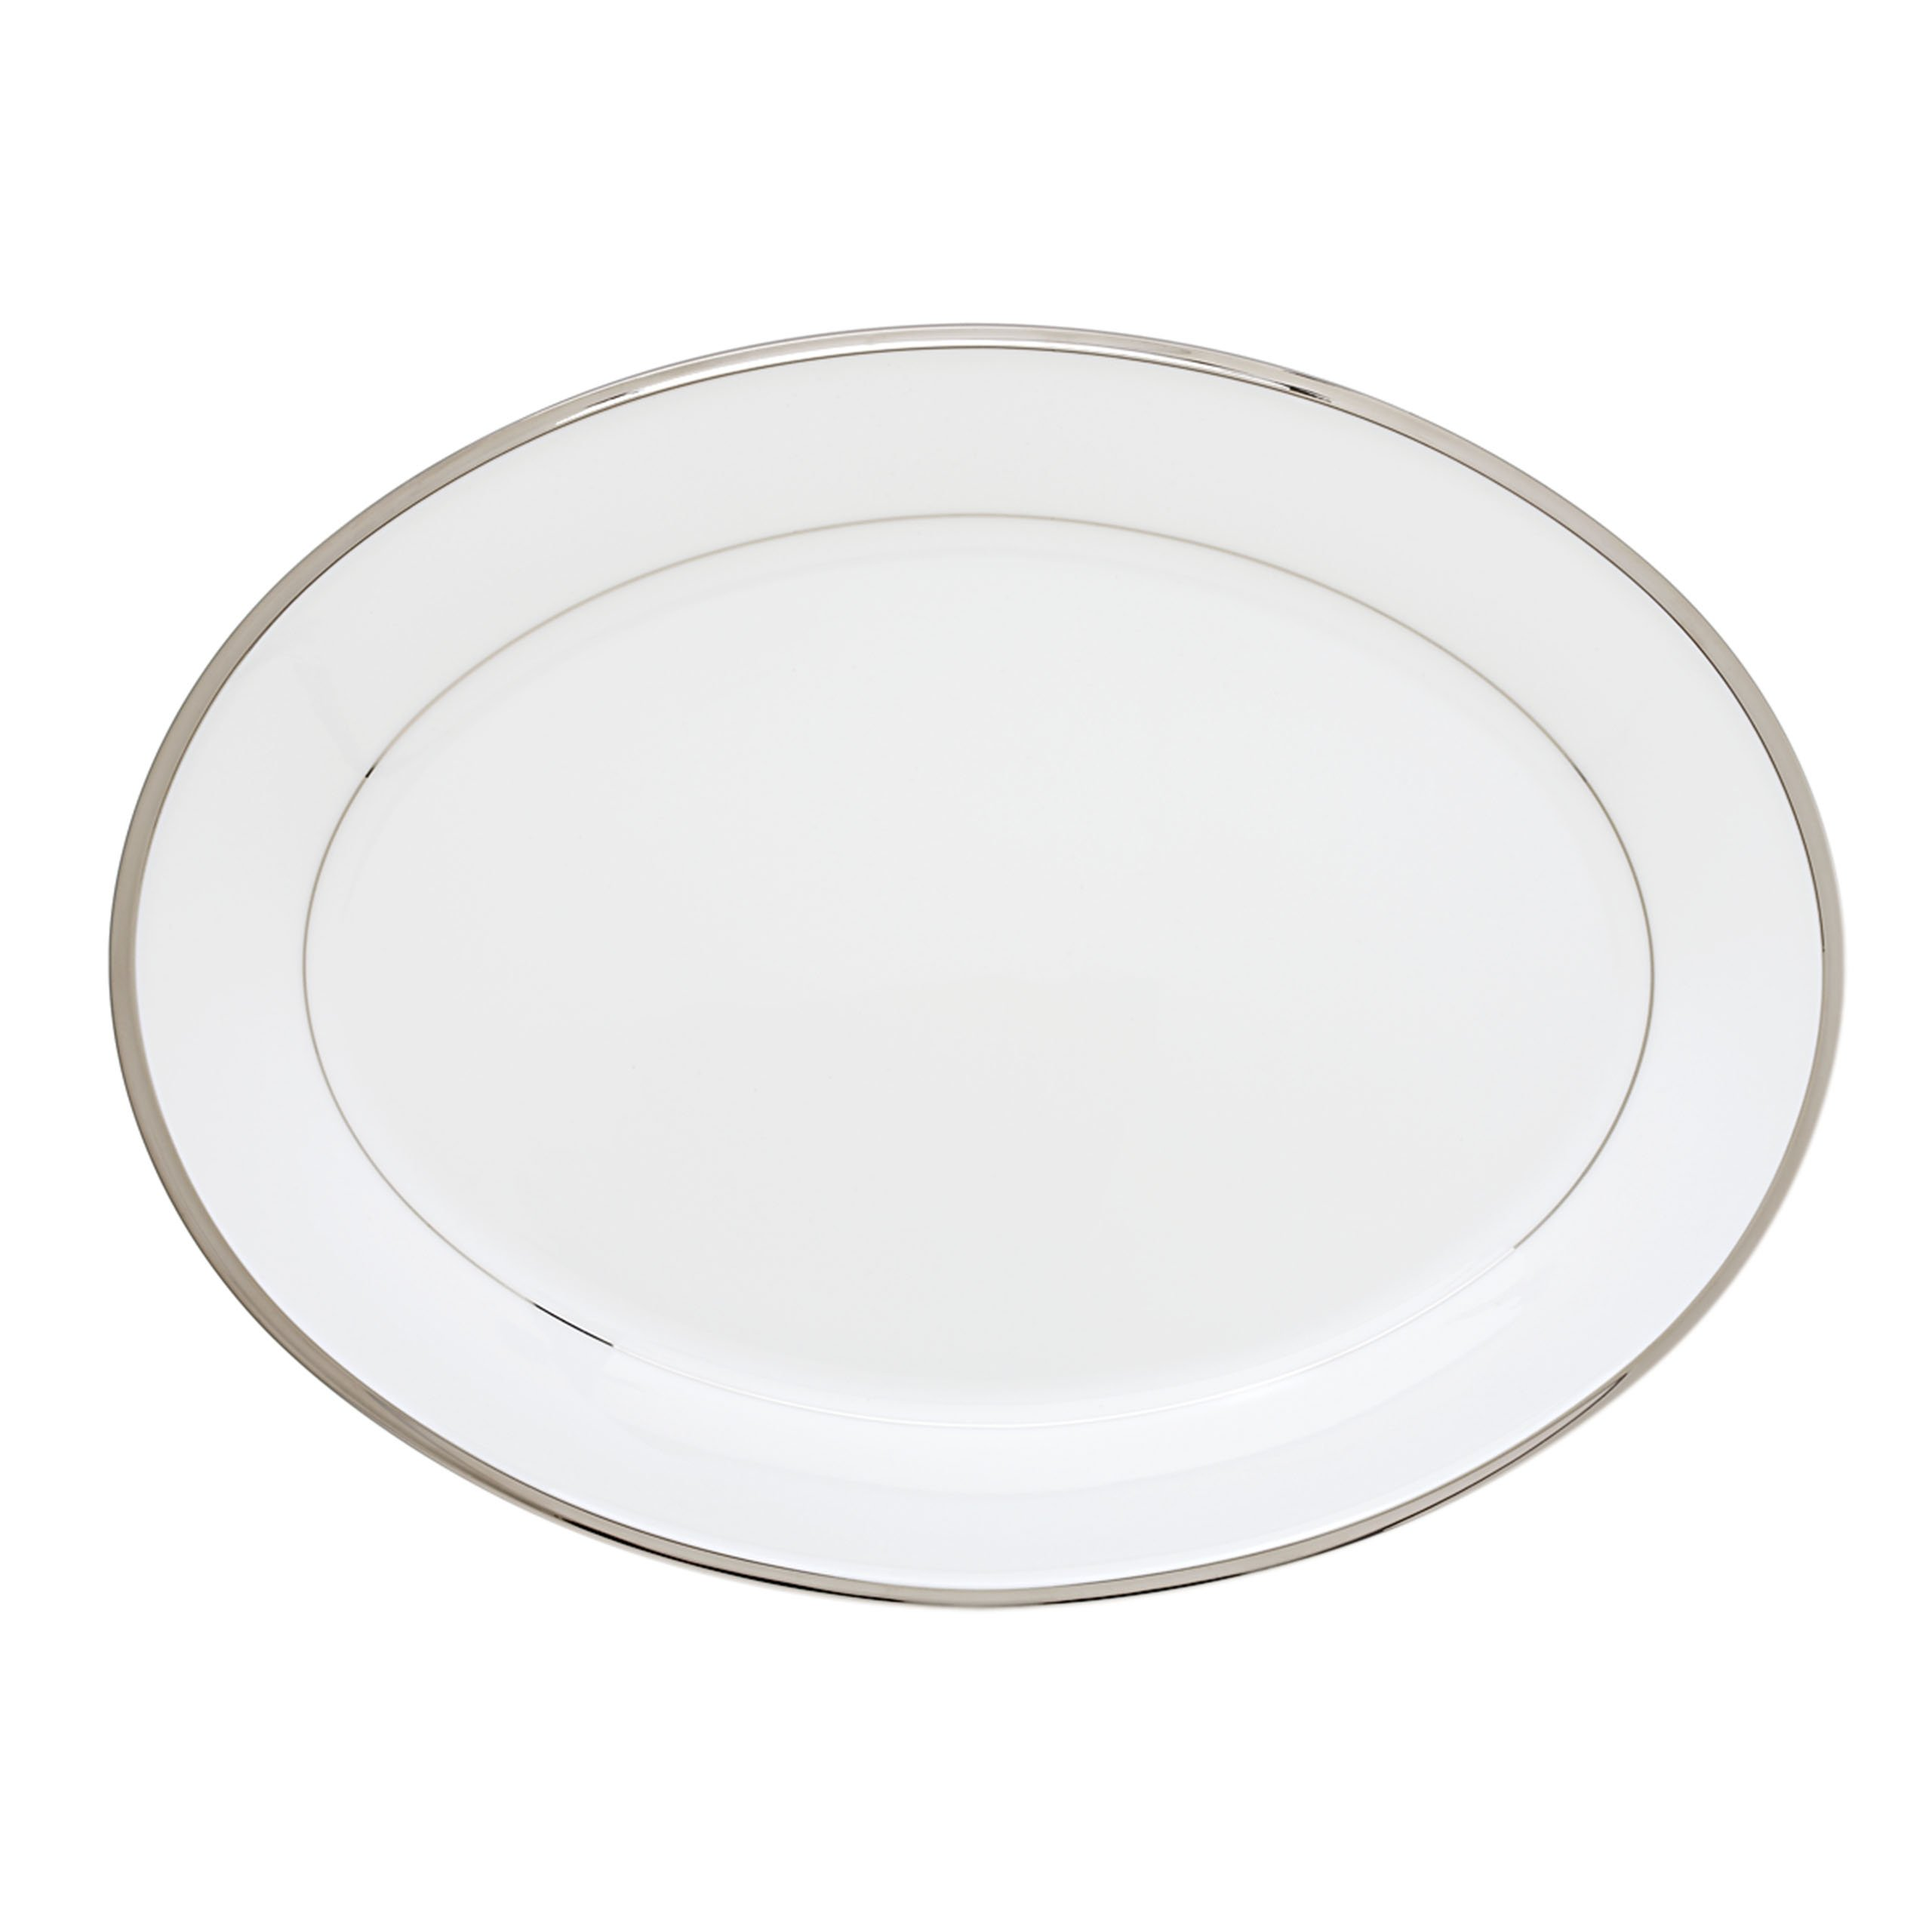 Lenox Solitaire Oval Platter, 16-Inch, White